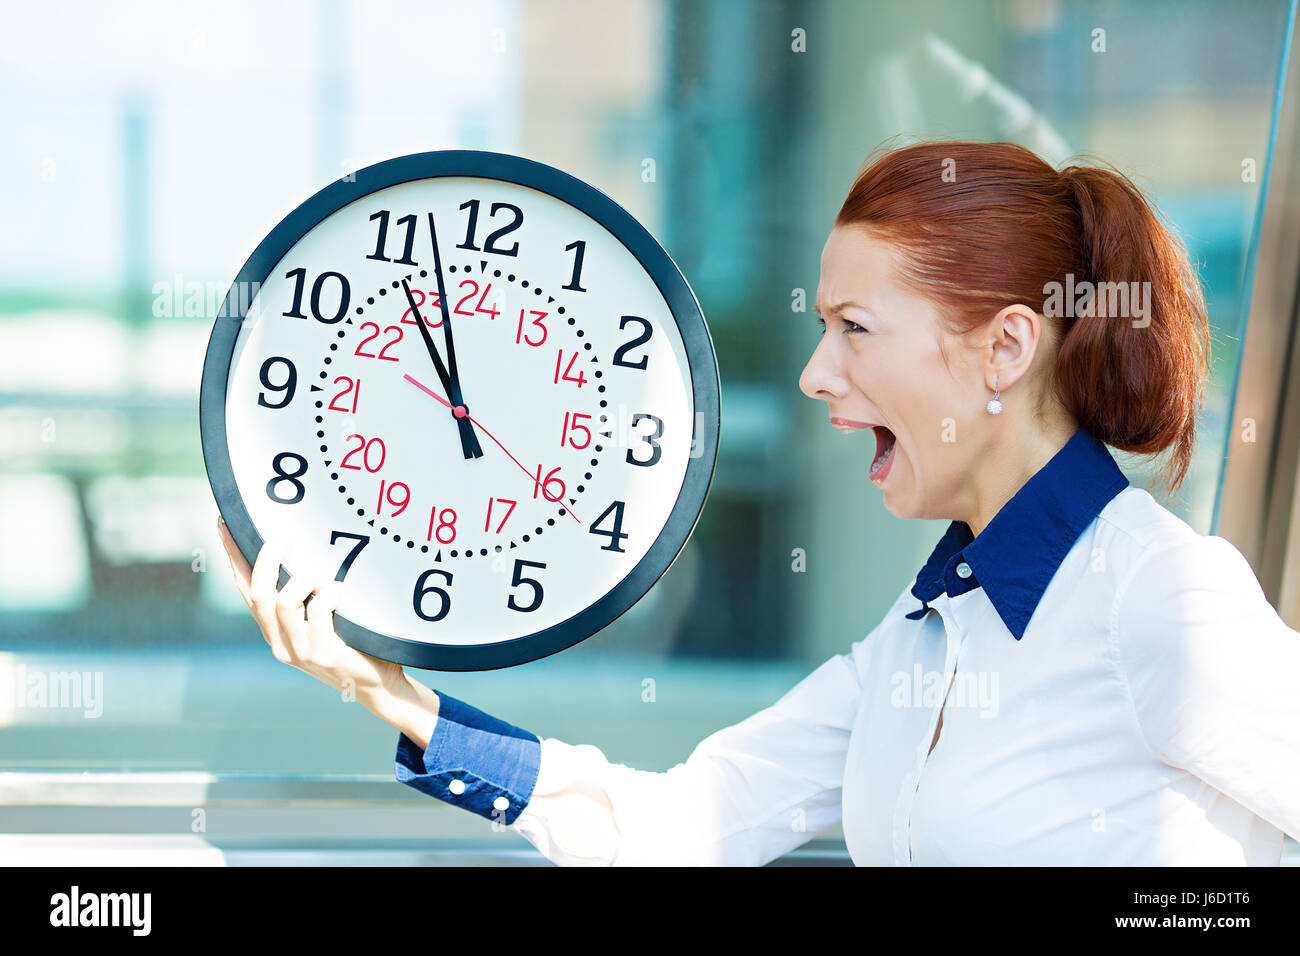 Closeup portrait business woman being late with clock in hands. Concept photo with young businesswoman in hurry - Stock Image